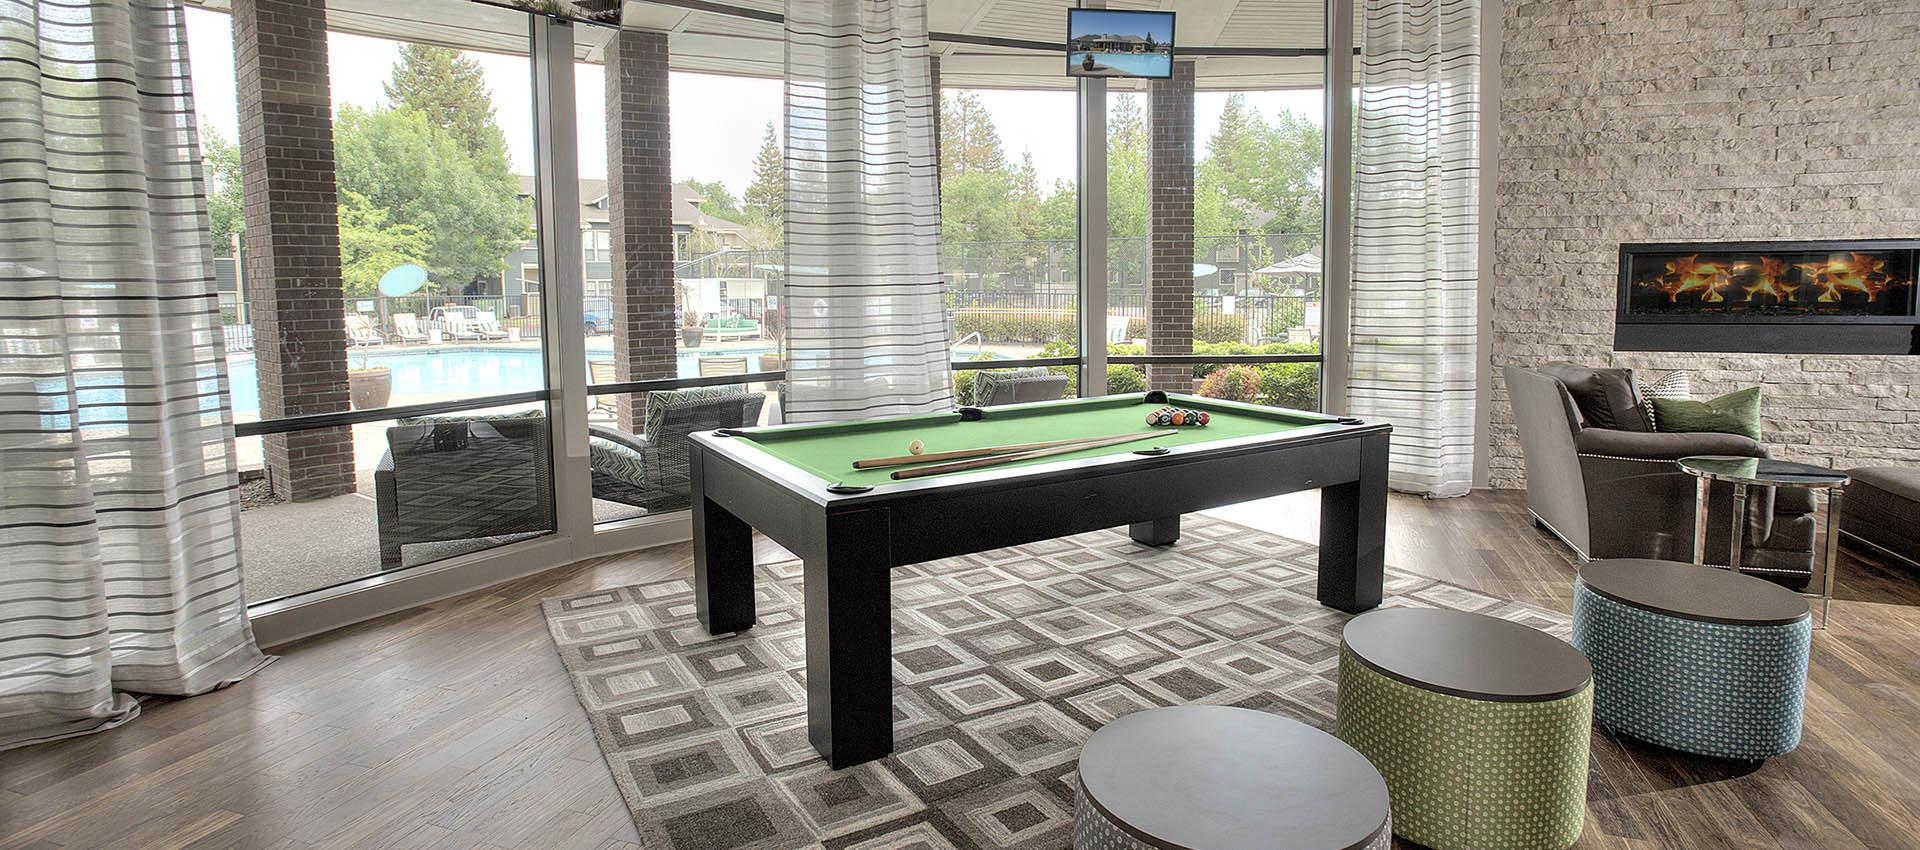 Pool Table at Deer Valley Apartment Homes in Roseville, California